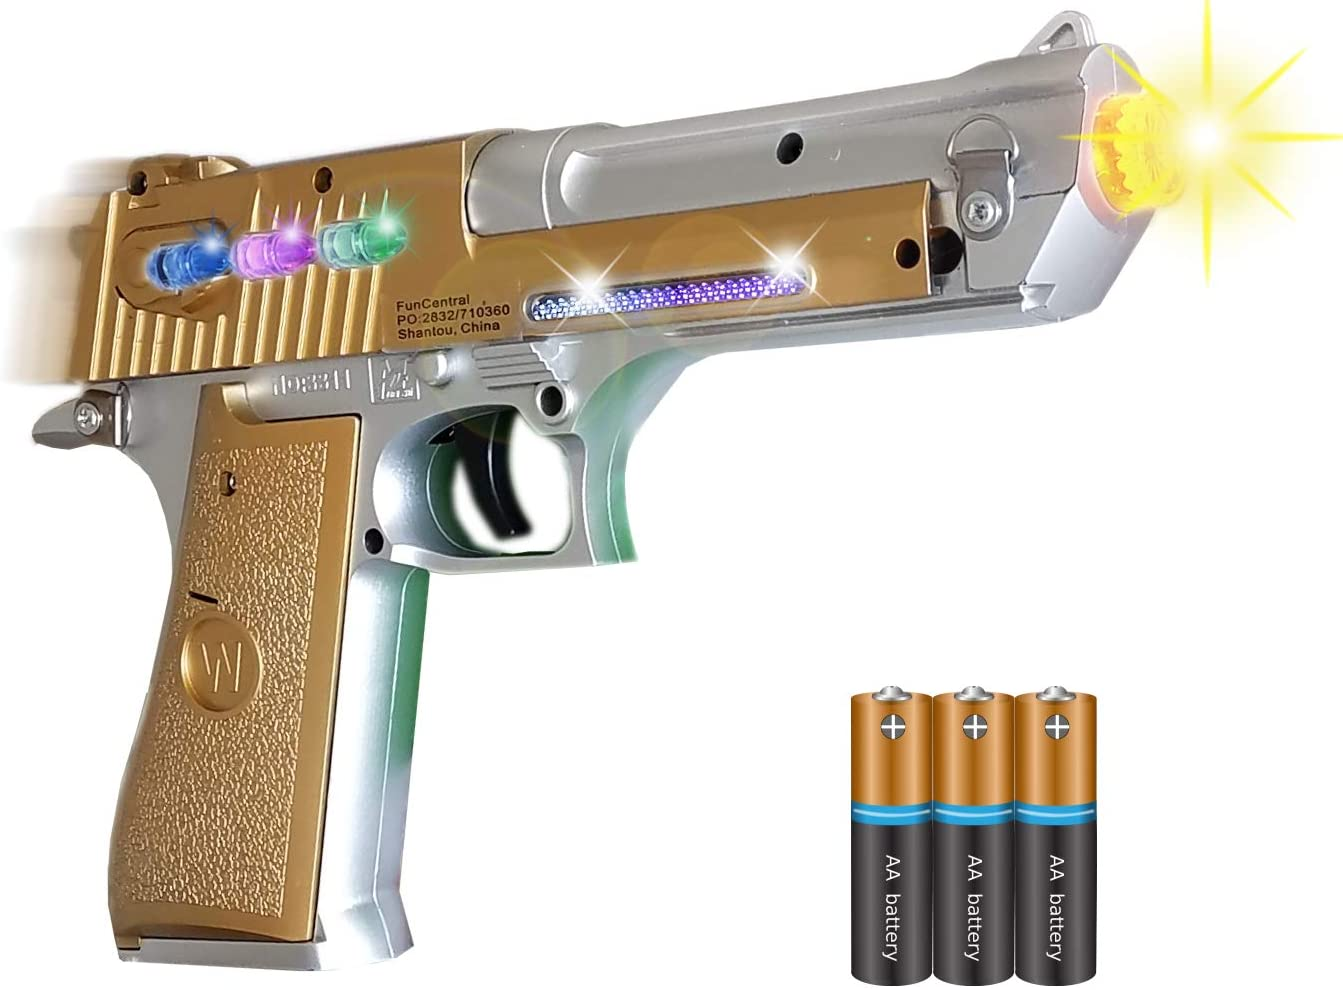 Flashing LED with Sounds Effects Mozlly Revolver Space Handgun Toy Set of 2